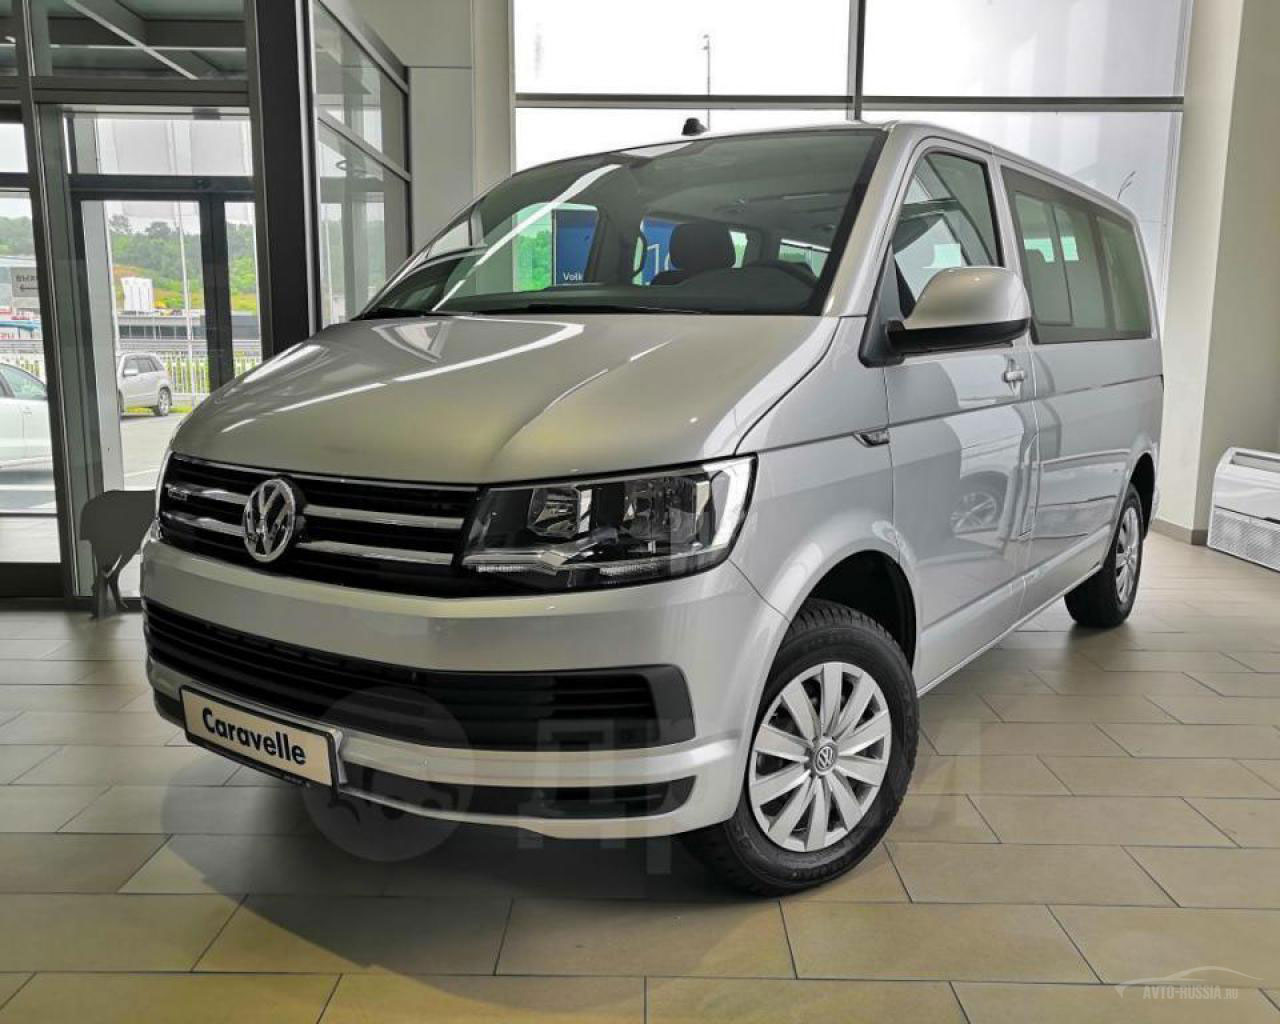 volkswagen caravelle search cars in your city